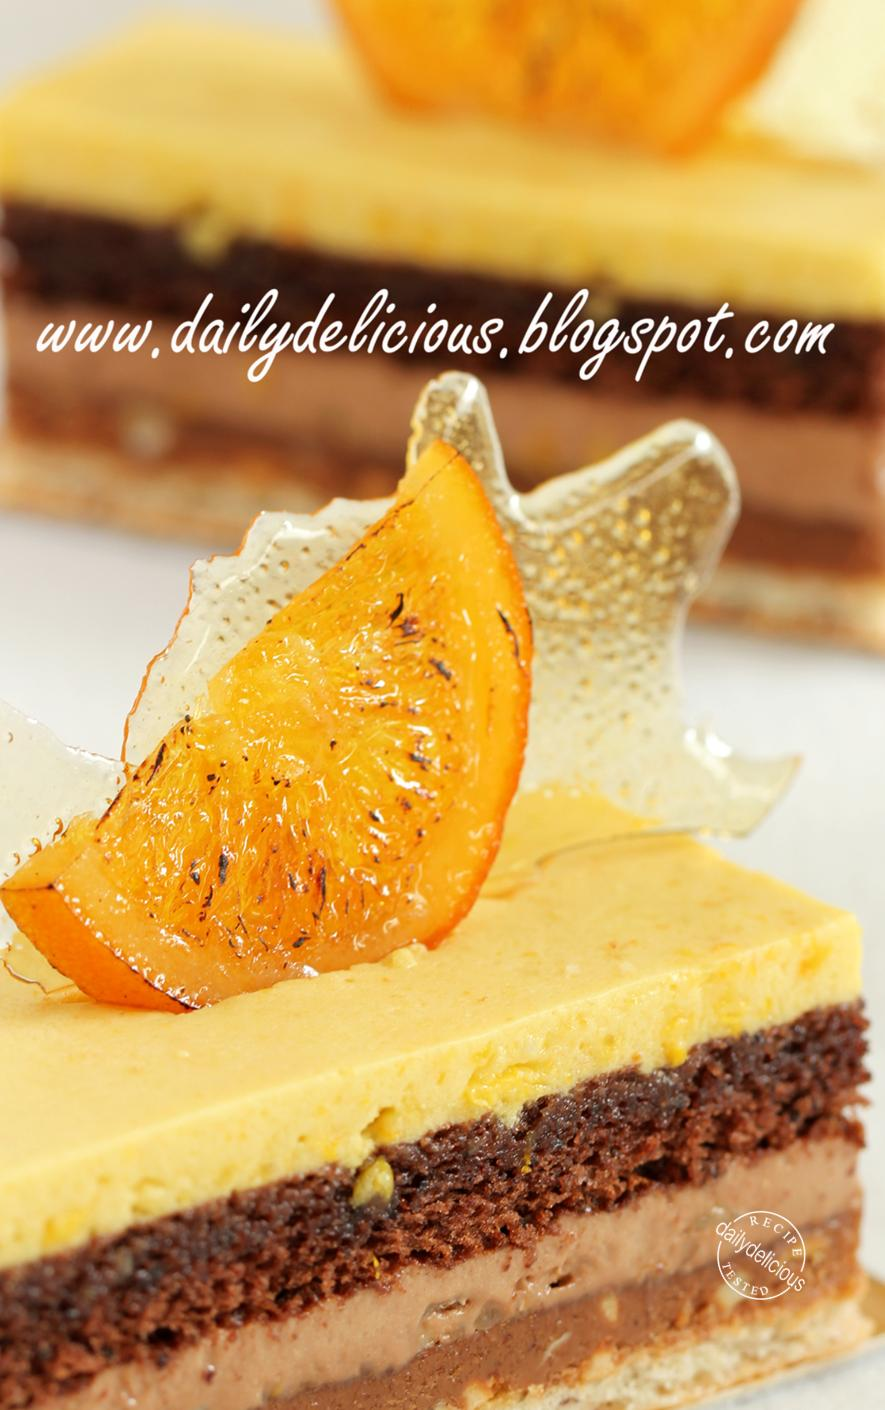 Dailydelicious Valencia Orange Chocolate And Nut